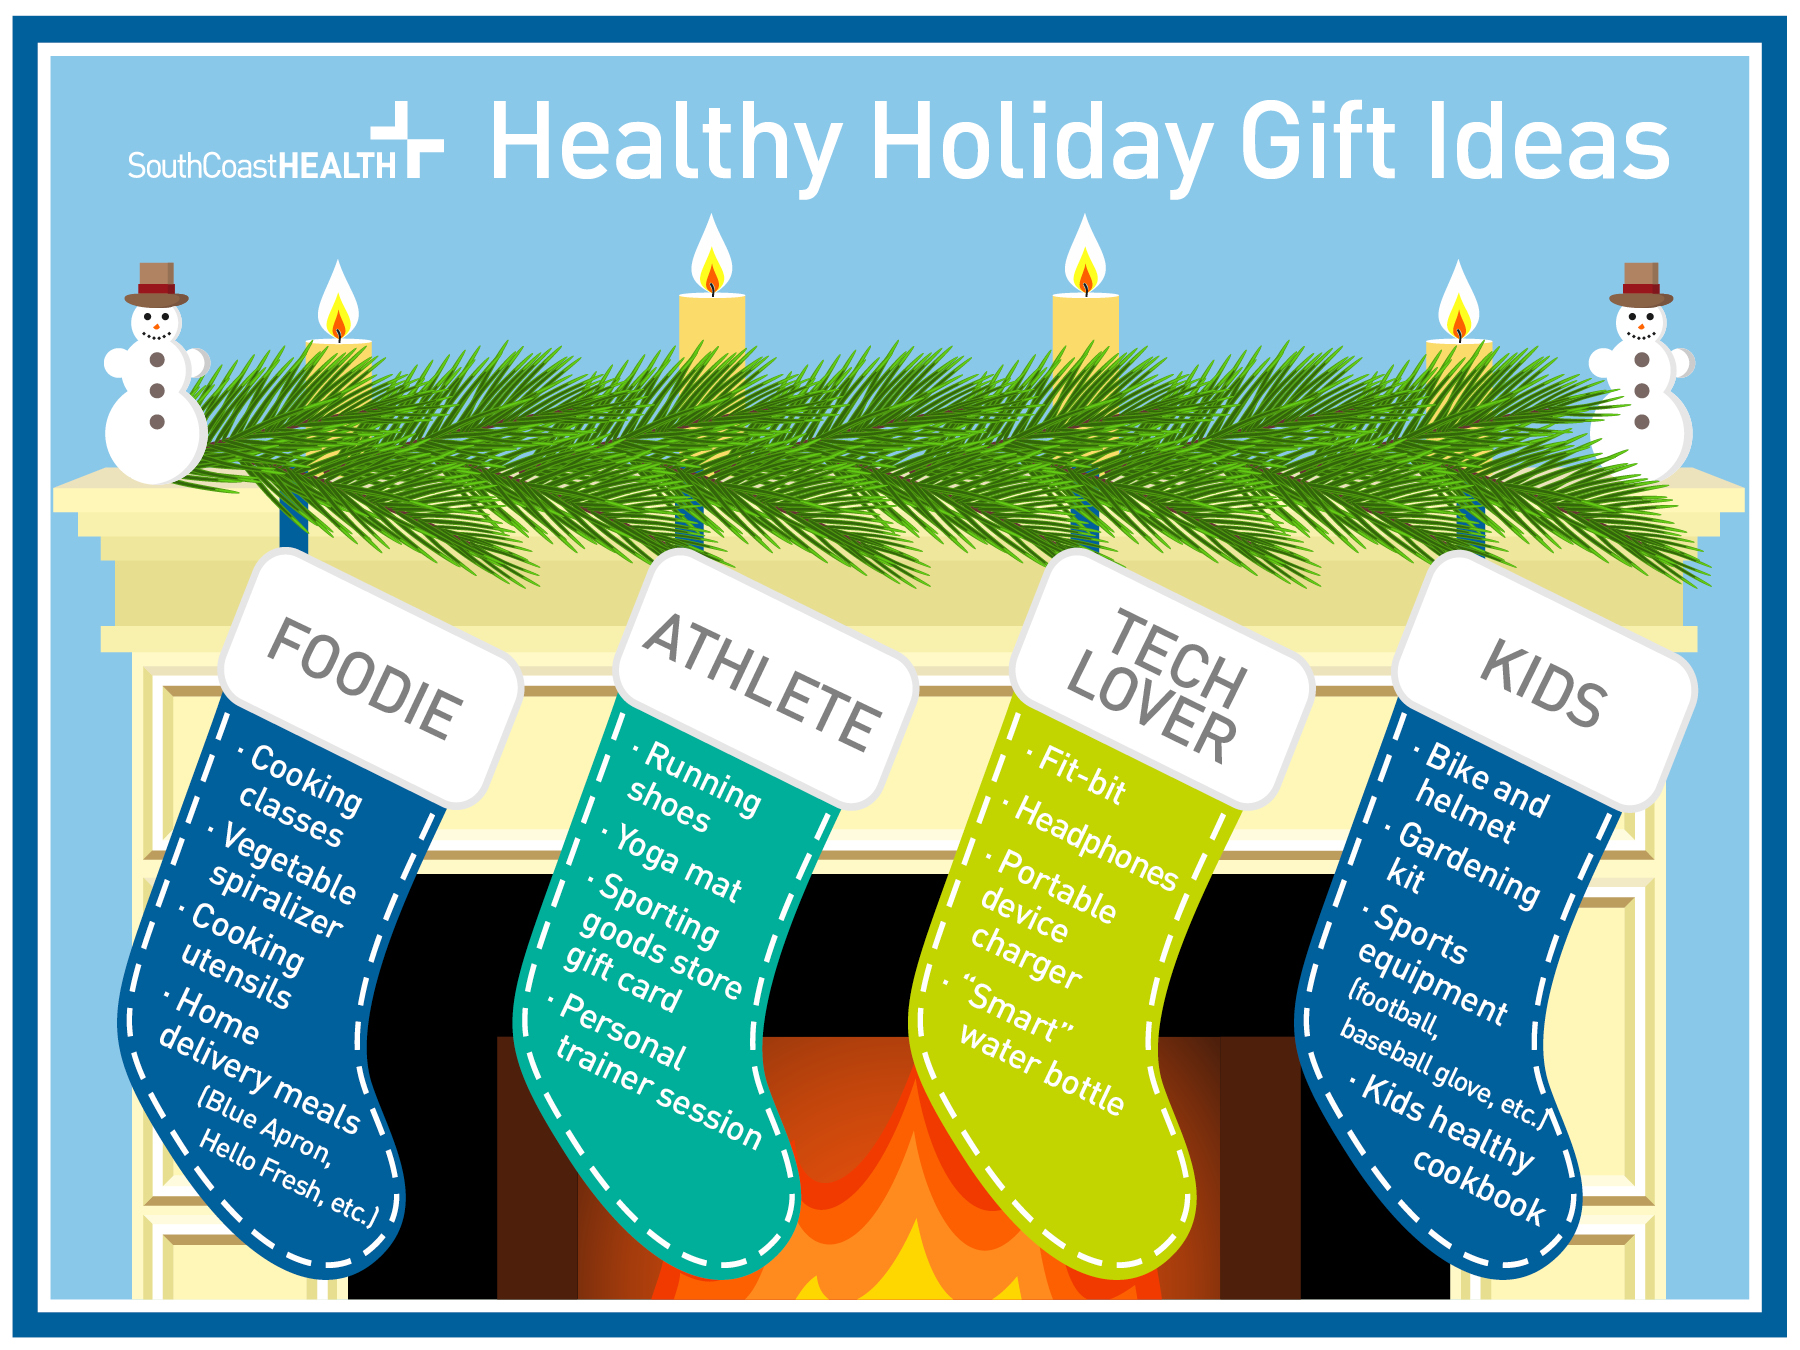 SouthCoasth Health Healthy Holiday Gift Ideas.